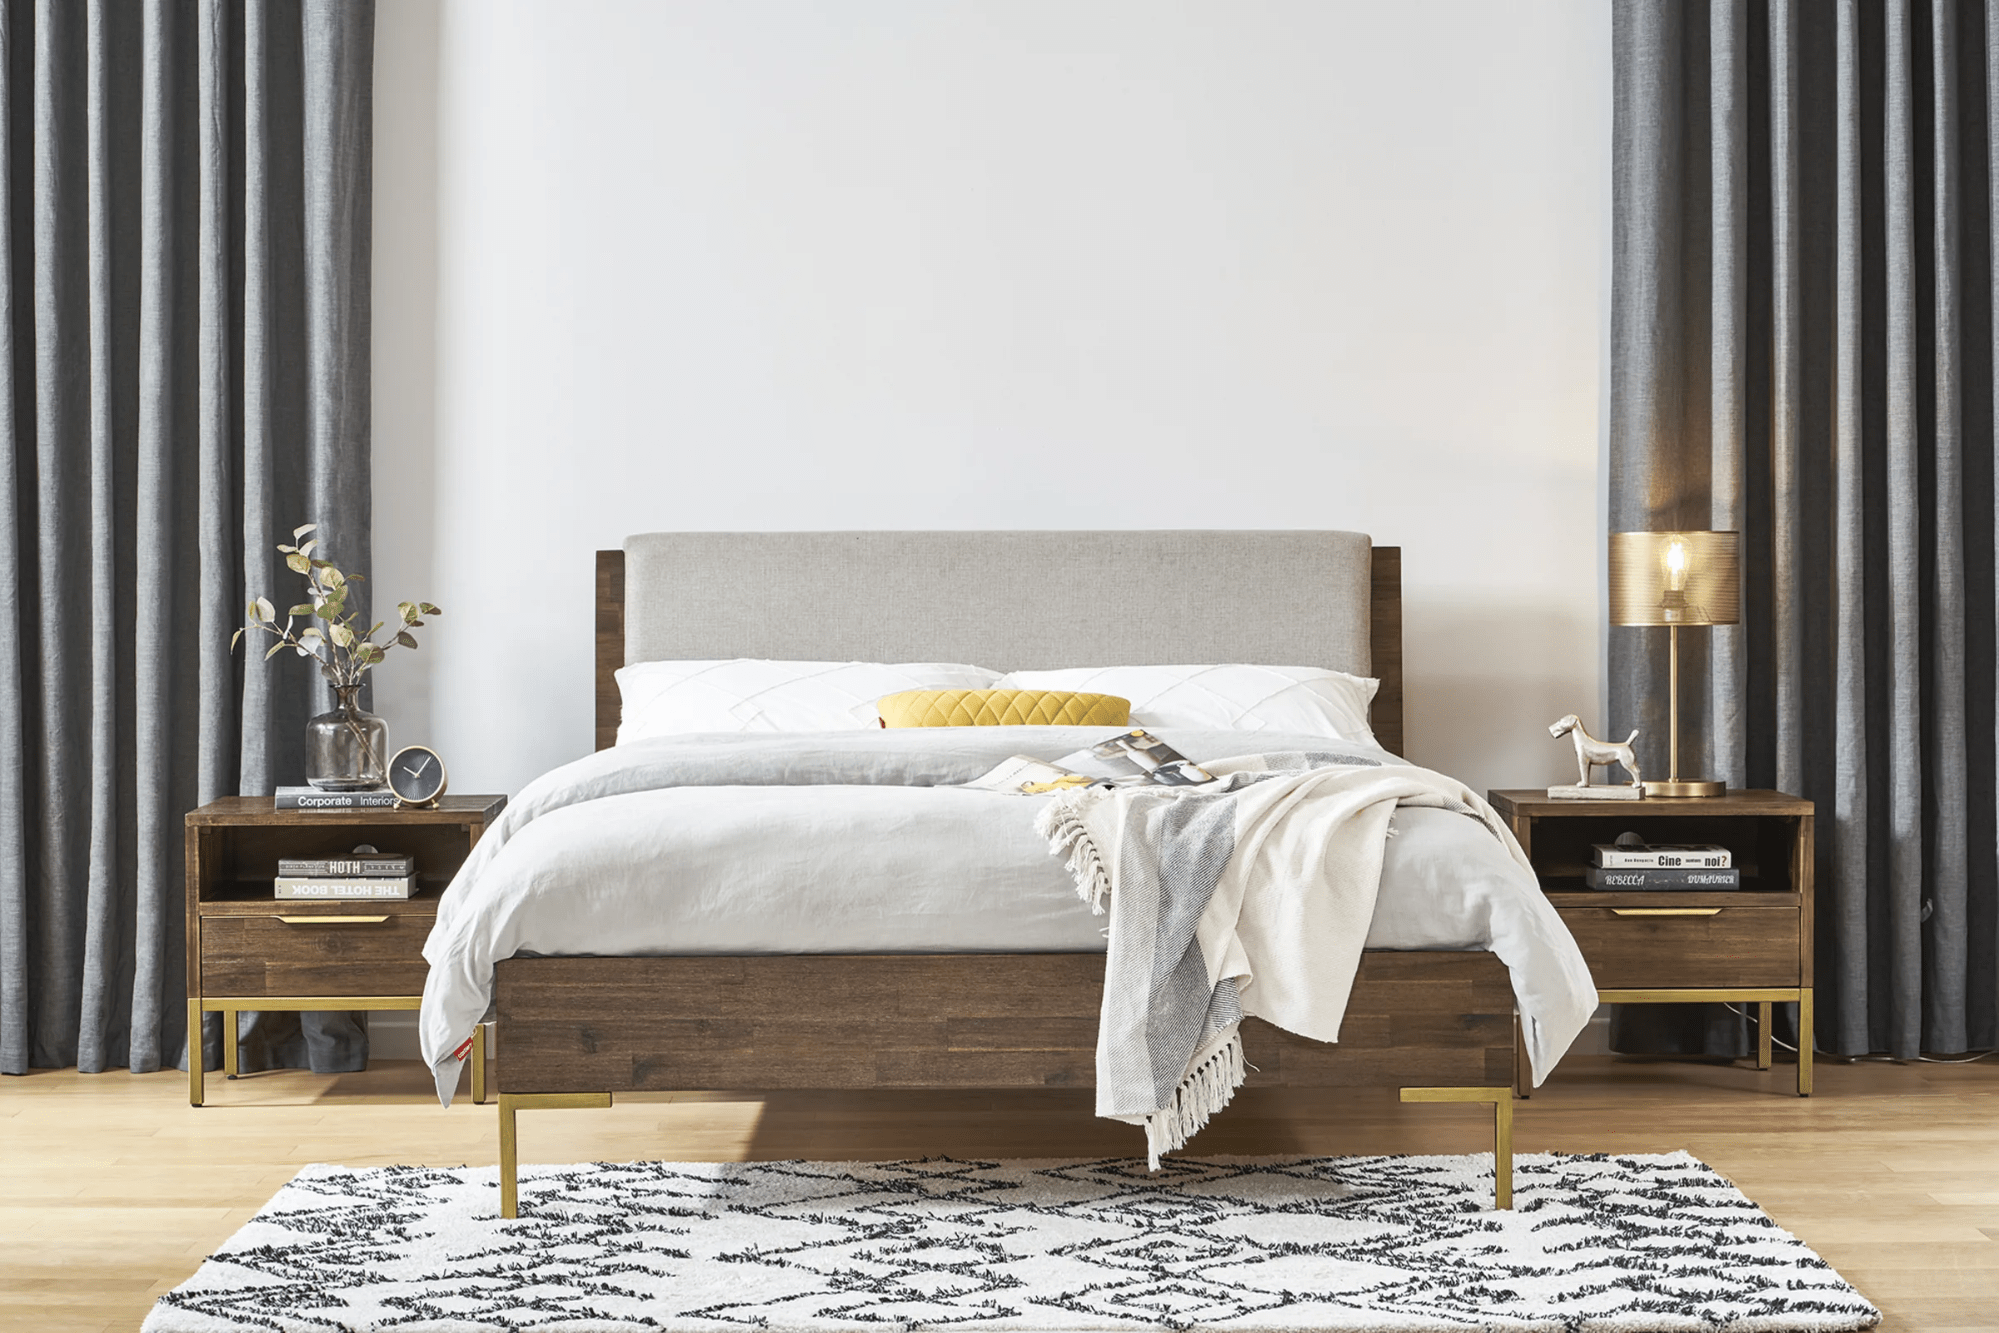 Castlery's Hudson bed with dark toned wood and gold trimmings